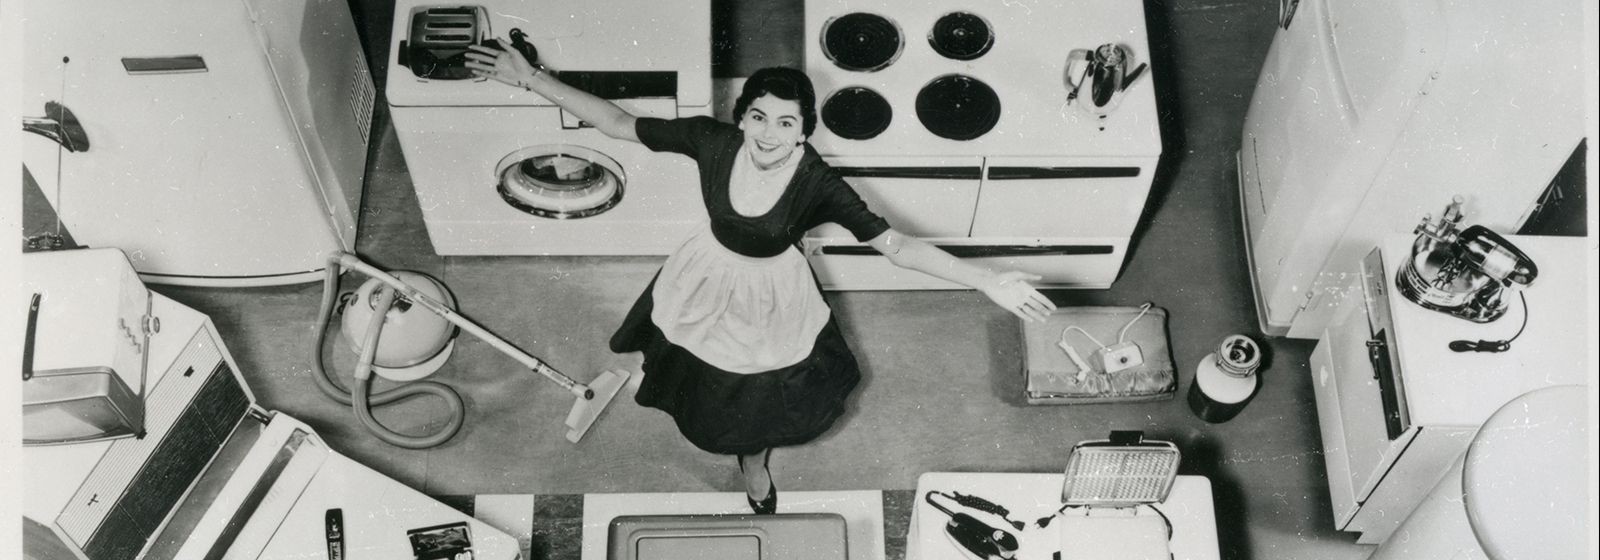 Retro photos: Look at all these appliances